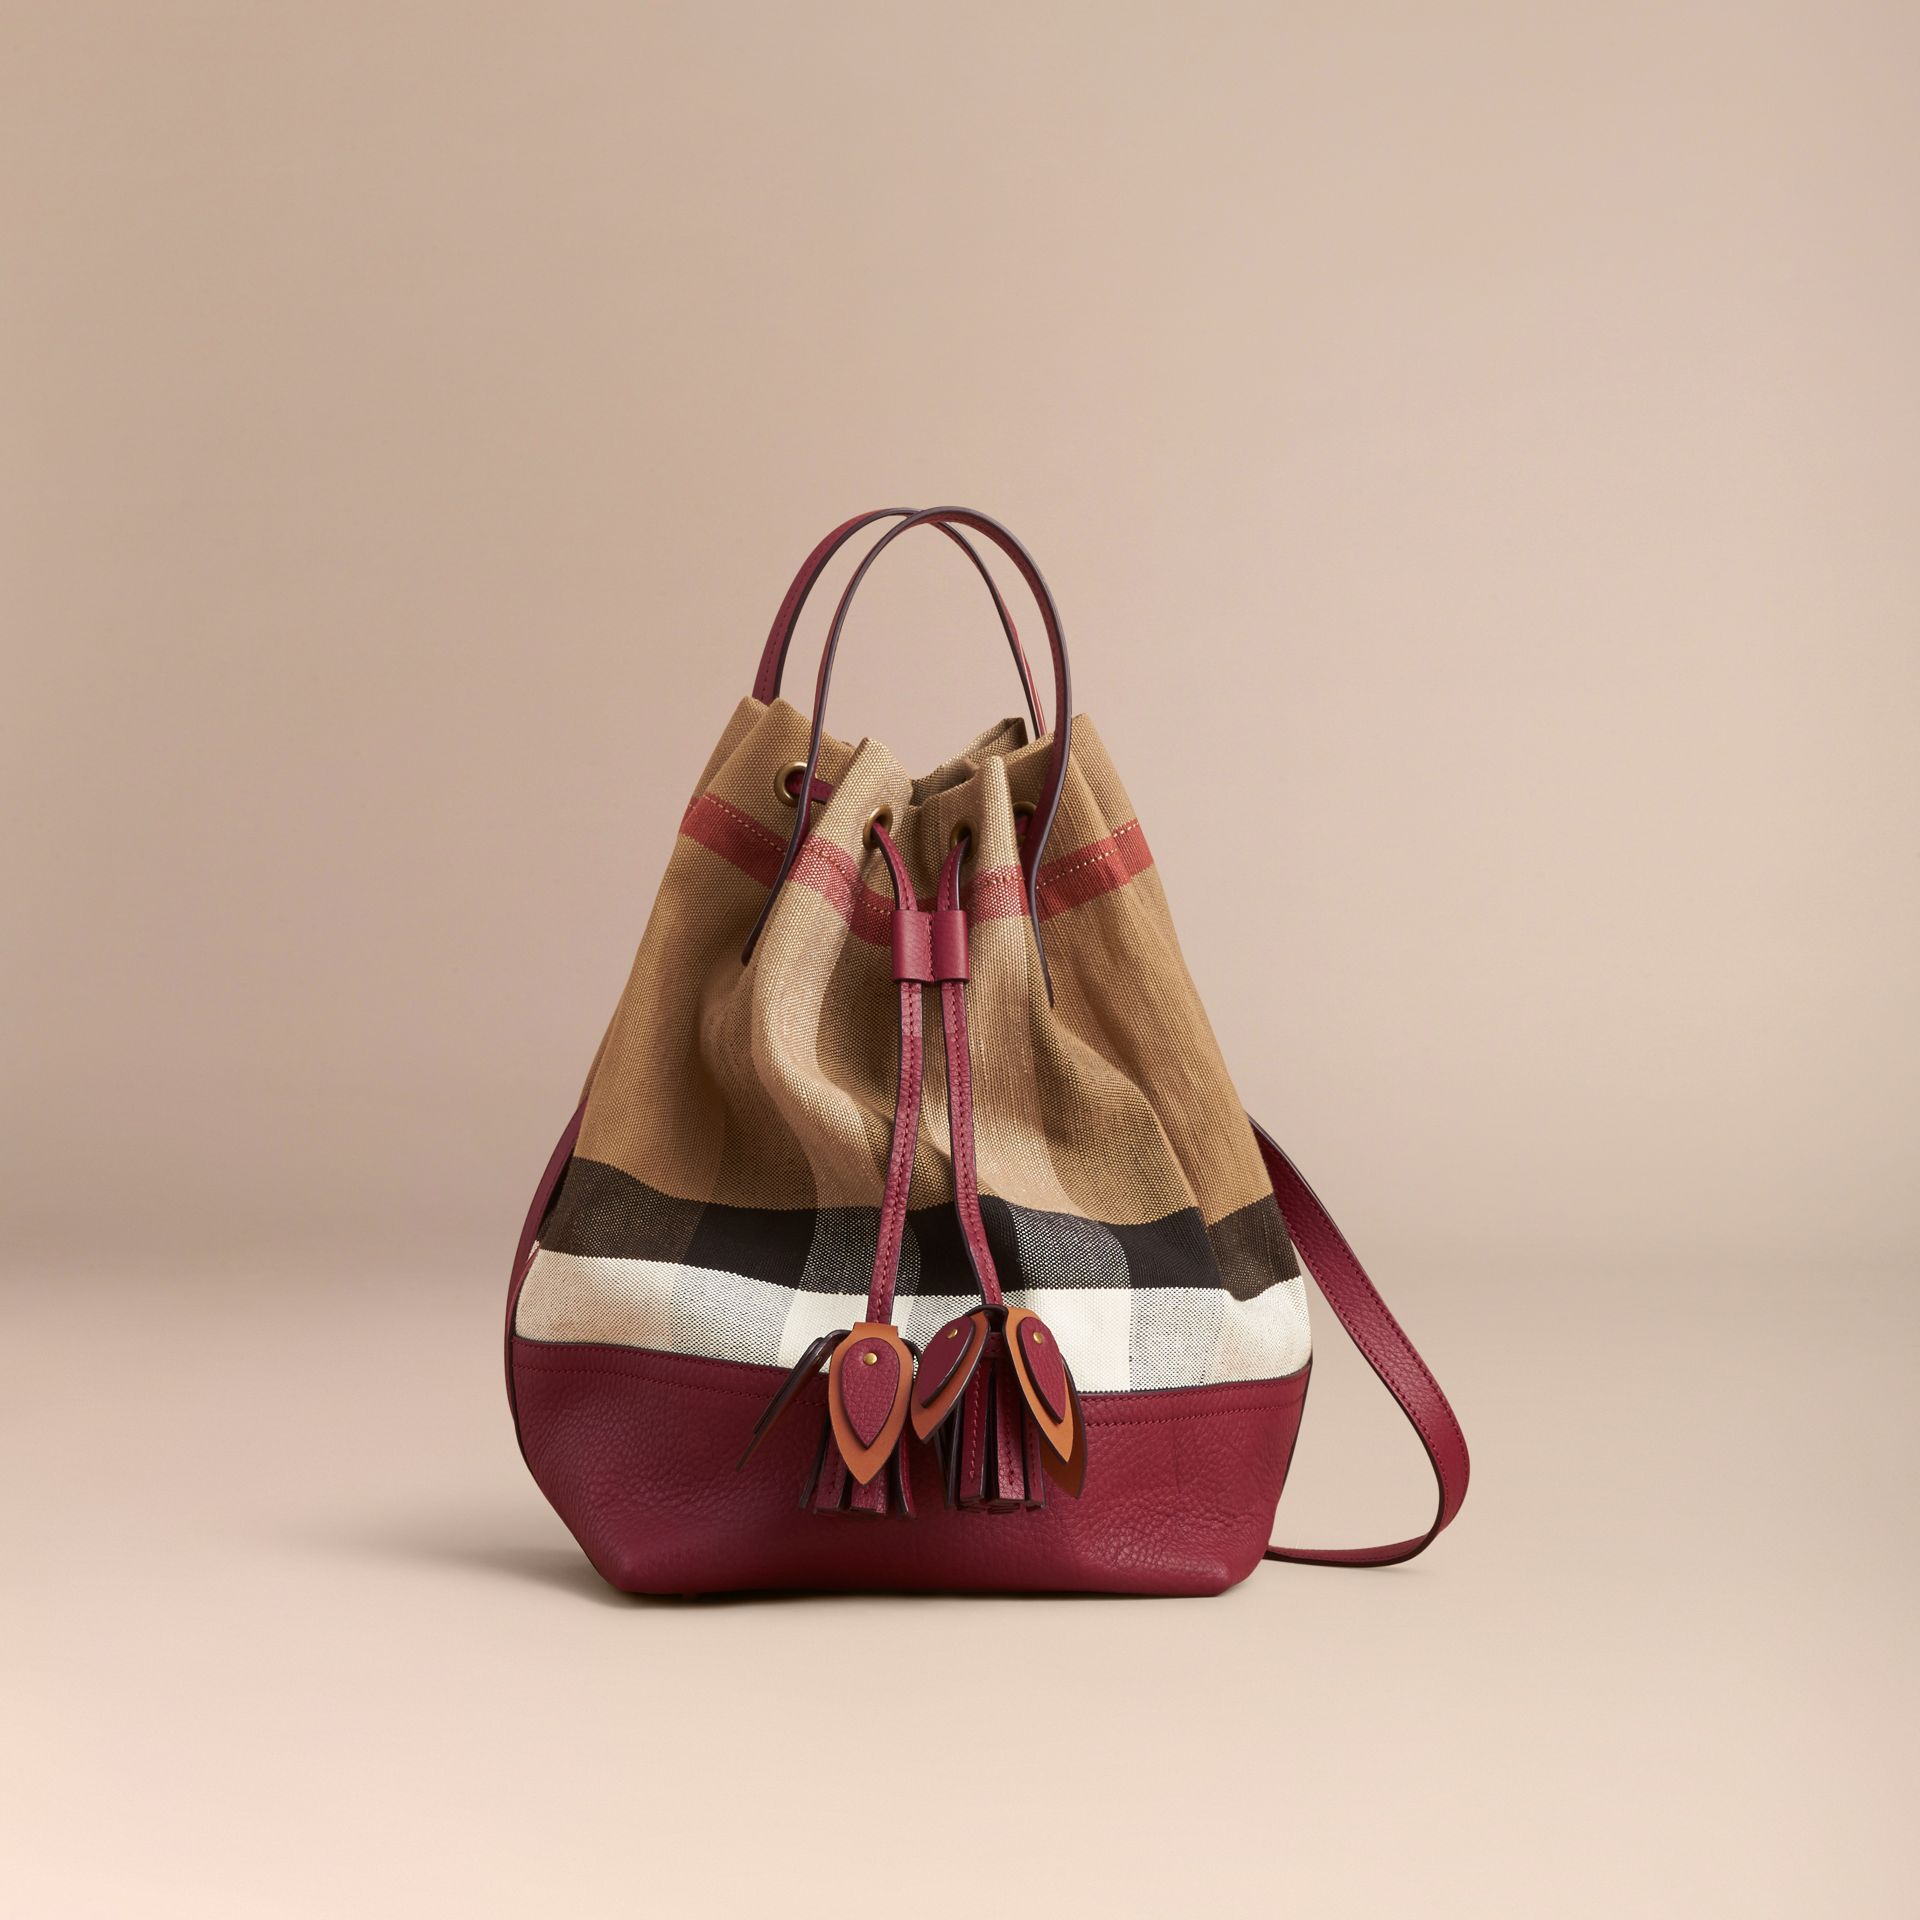 Medium Canvas Check and Leather Bucket Bag in Burgundy Red - Women | Burberry Hong Kong - gallery image 8